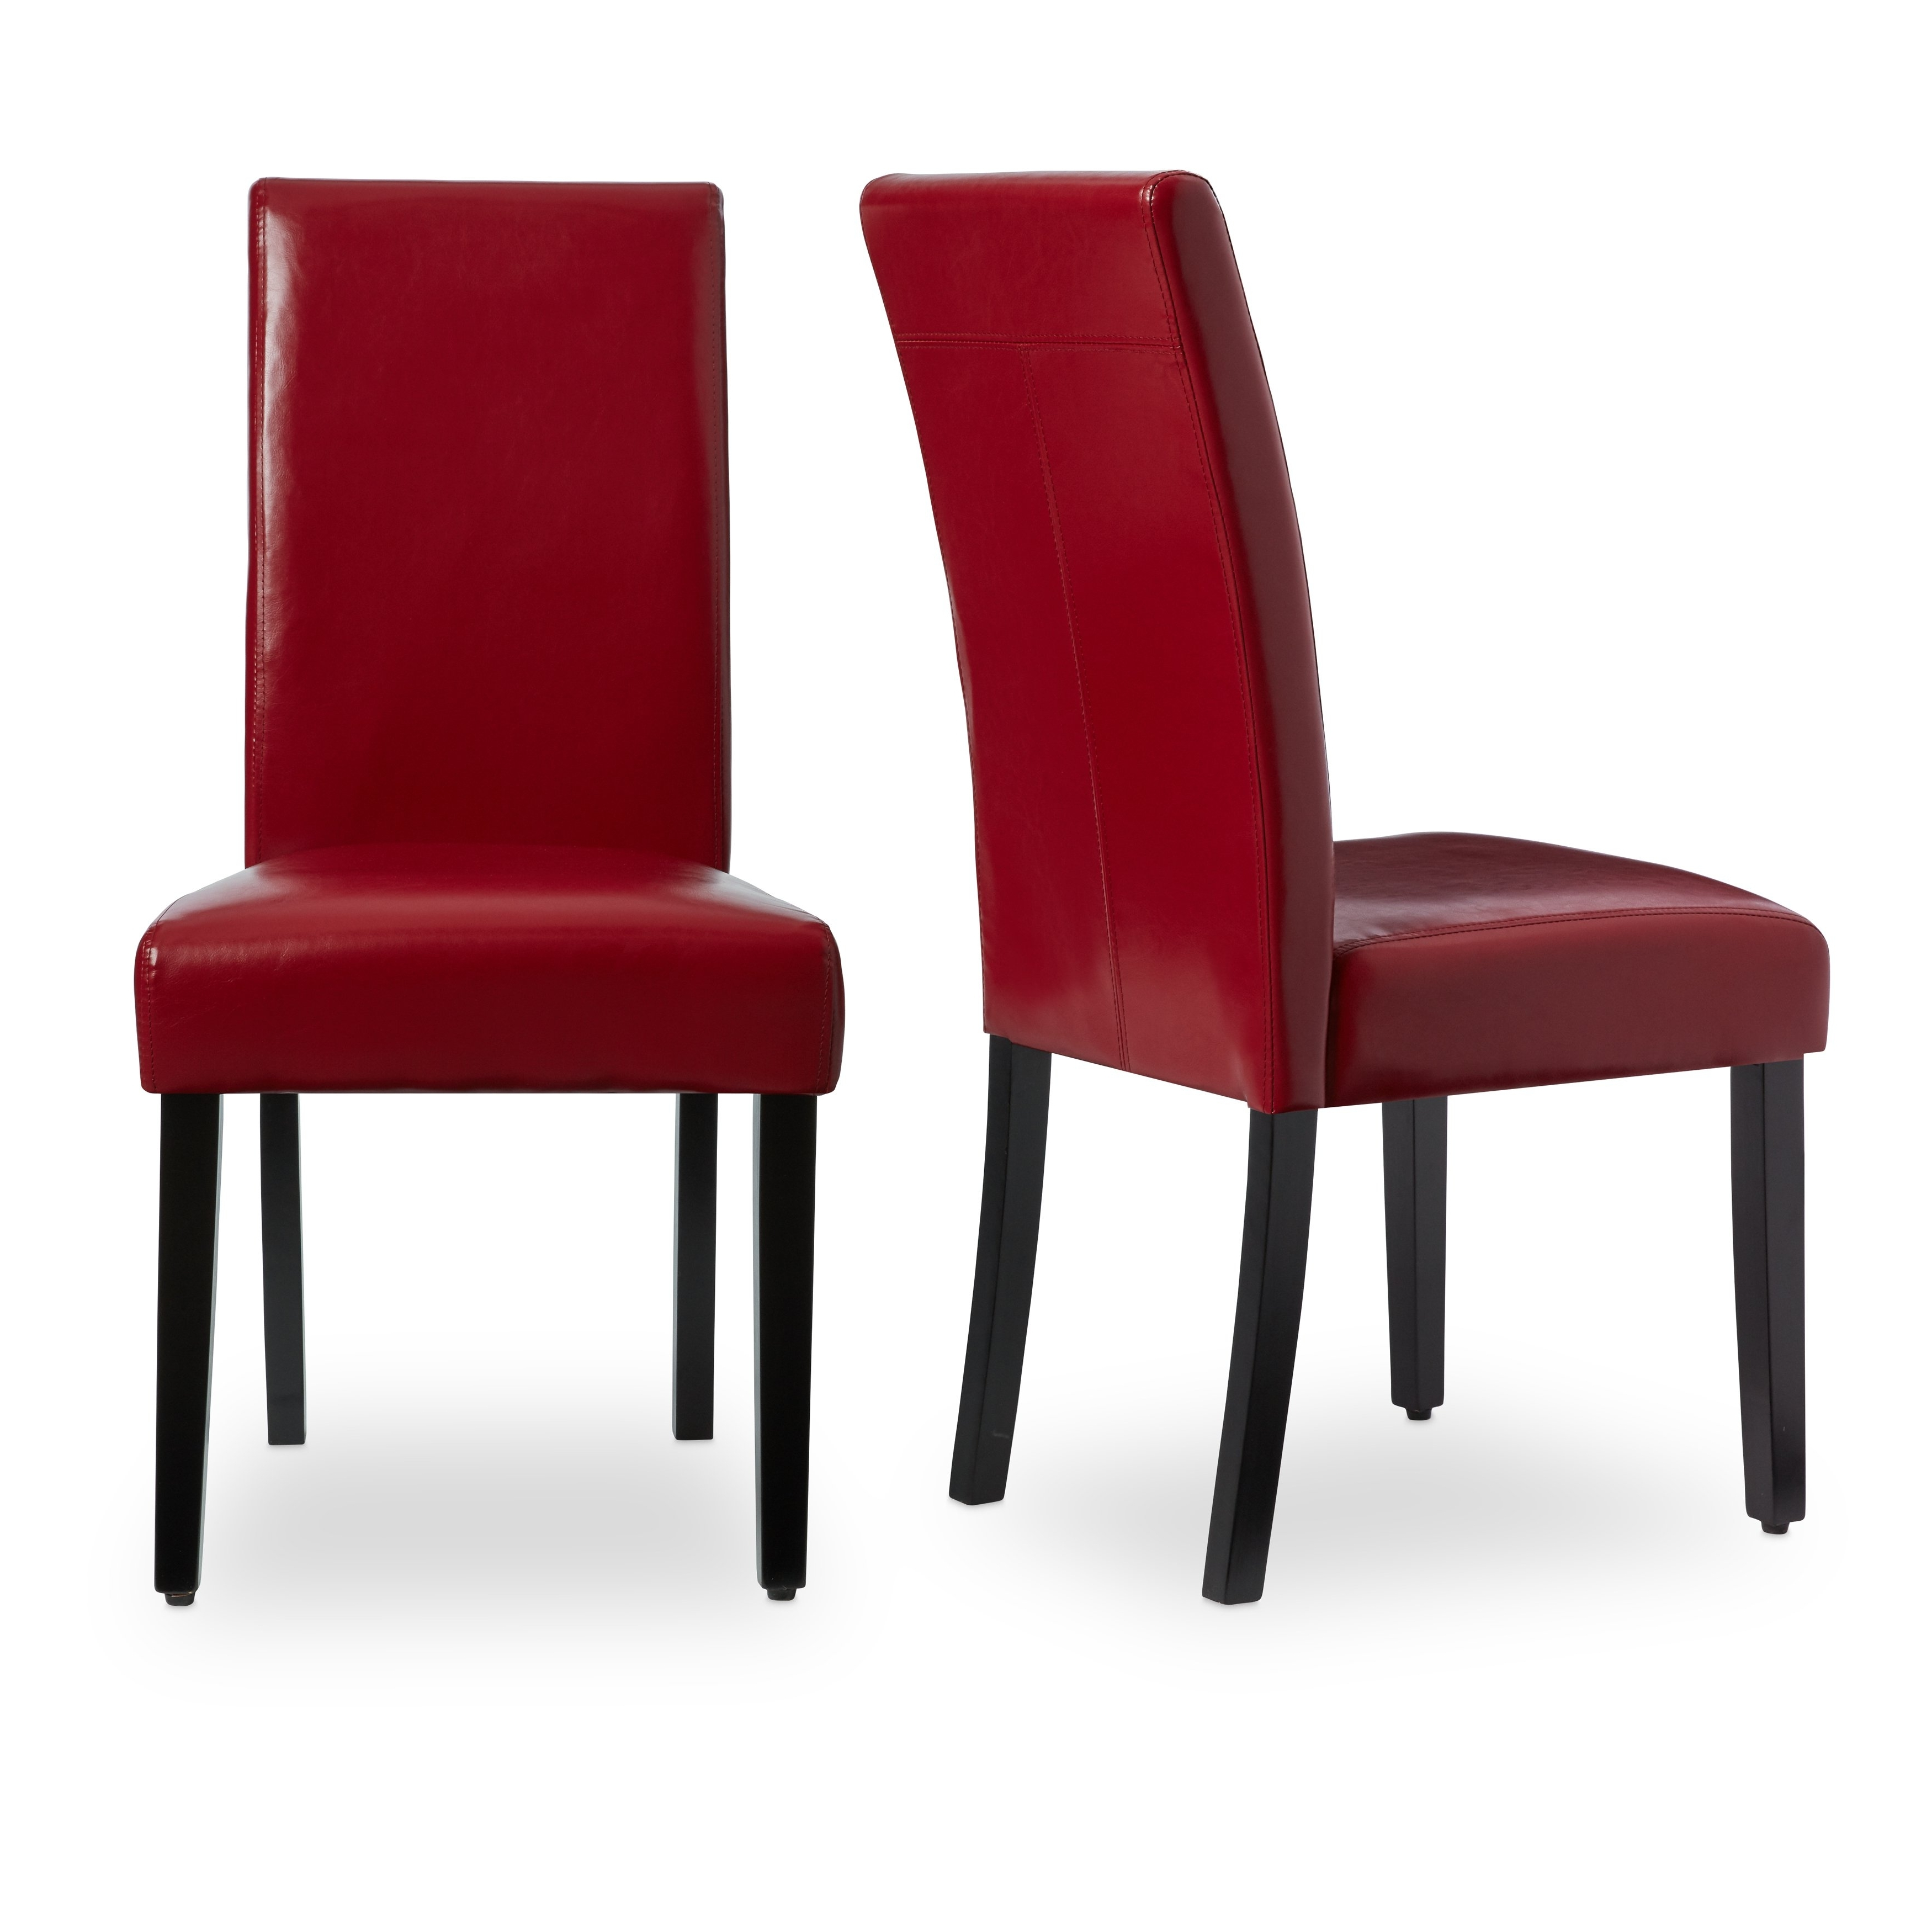 Leather Dining Chairs Set Of 2 Red High Back Restaurant Upholstered Regarding Favorite Red Leather Dining Chairs (View 3 of 25)